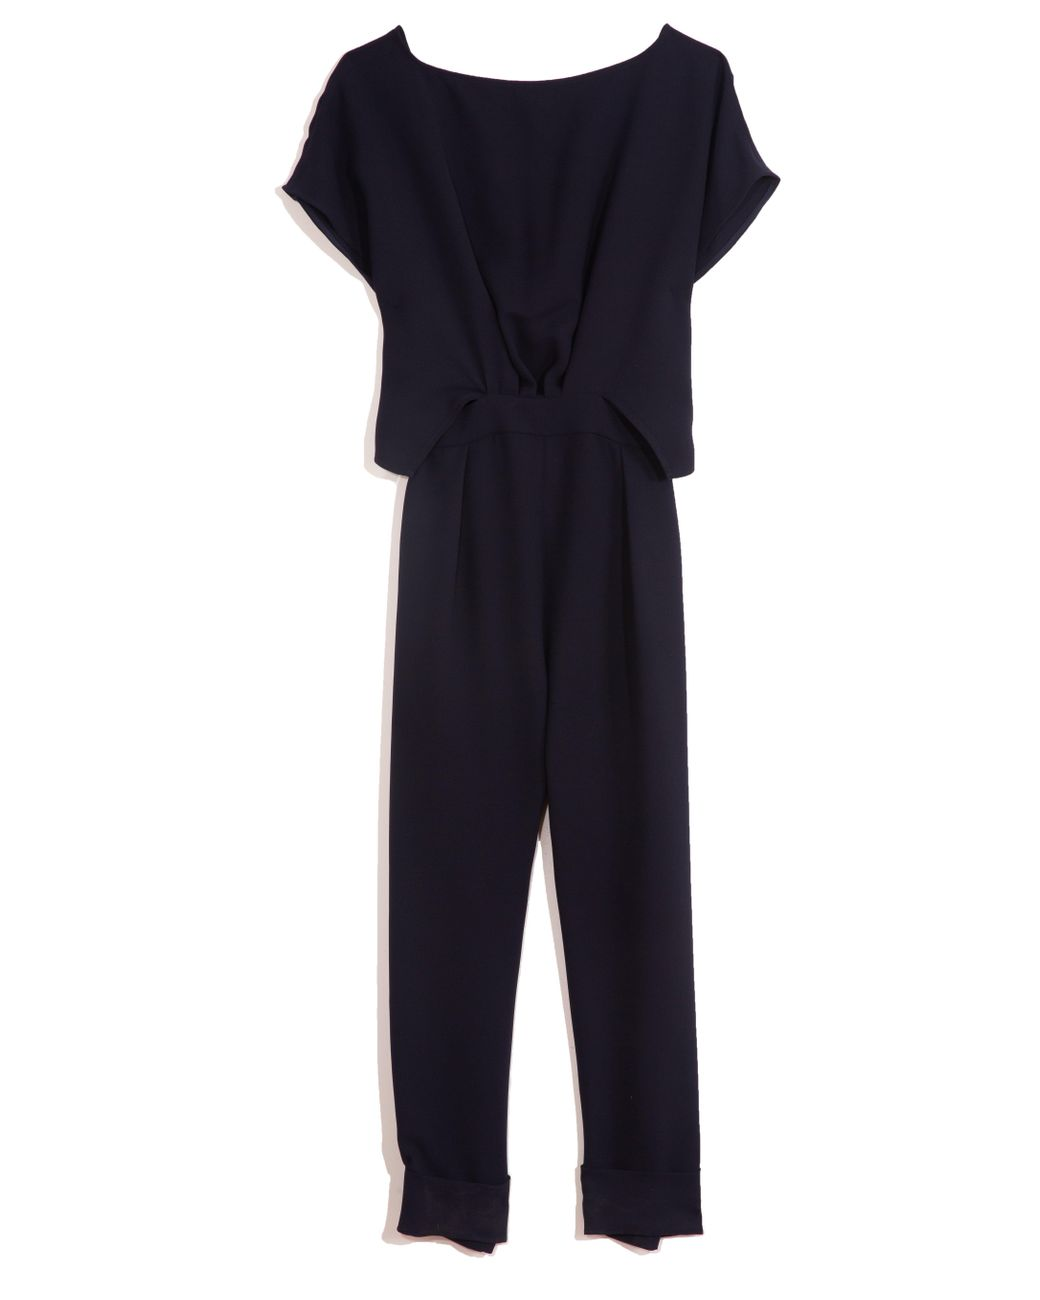 The Perfect Jumpsuit.